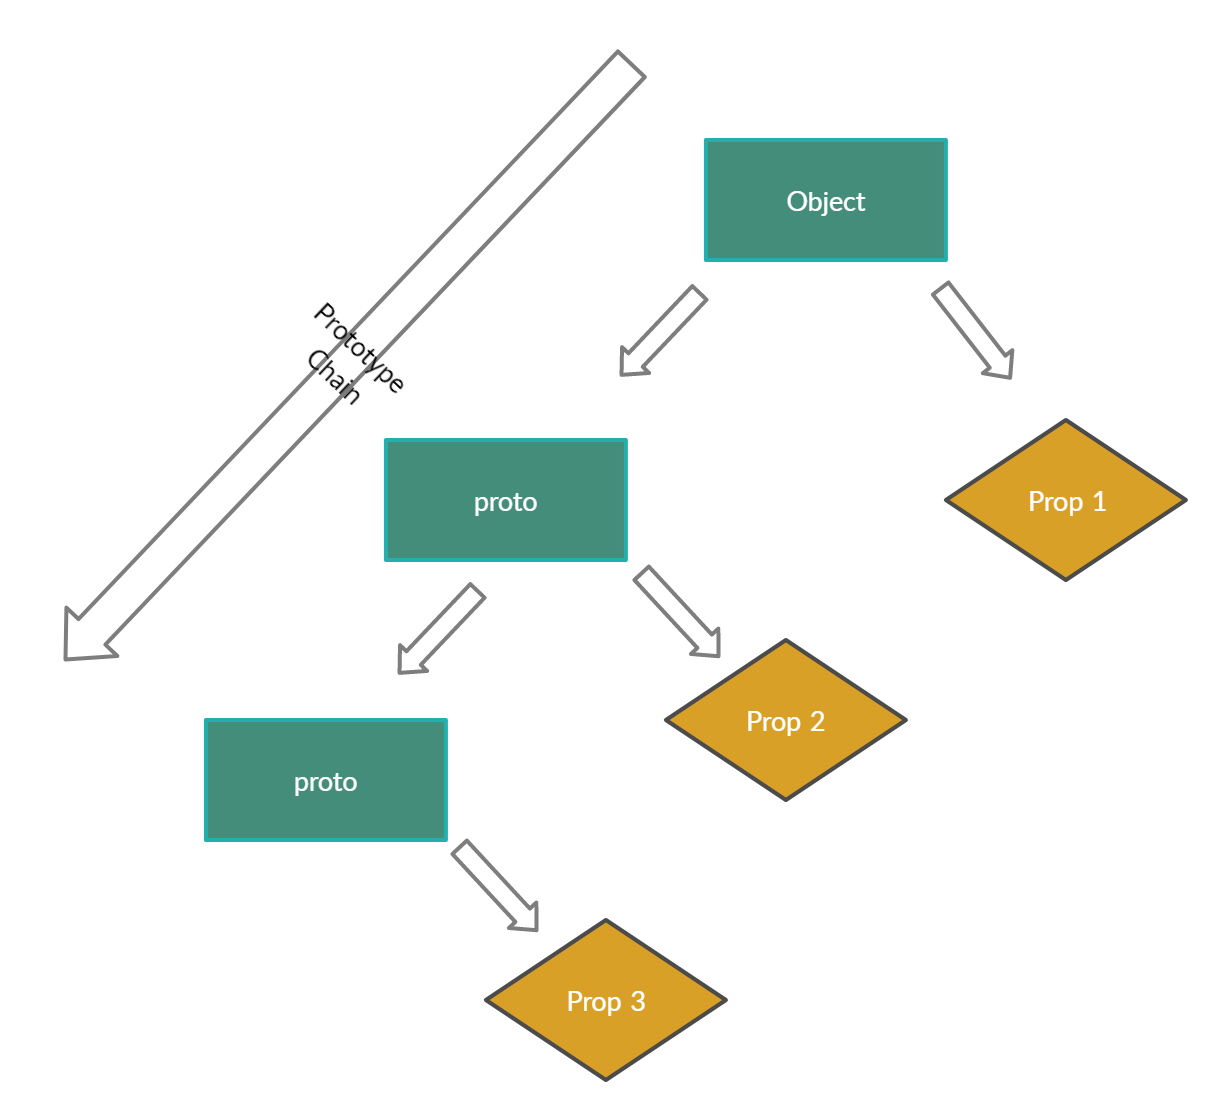 Image of a model prototype chain